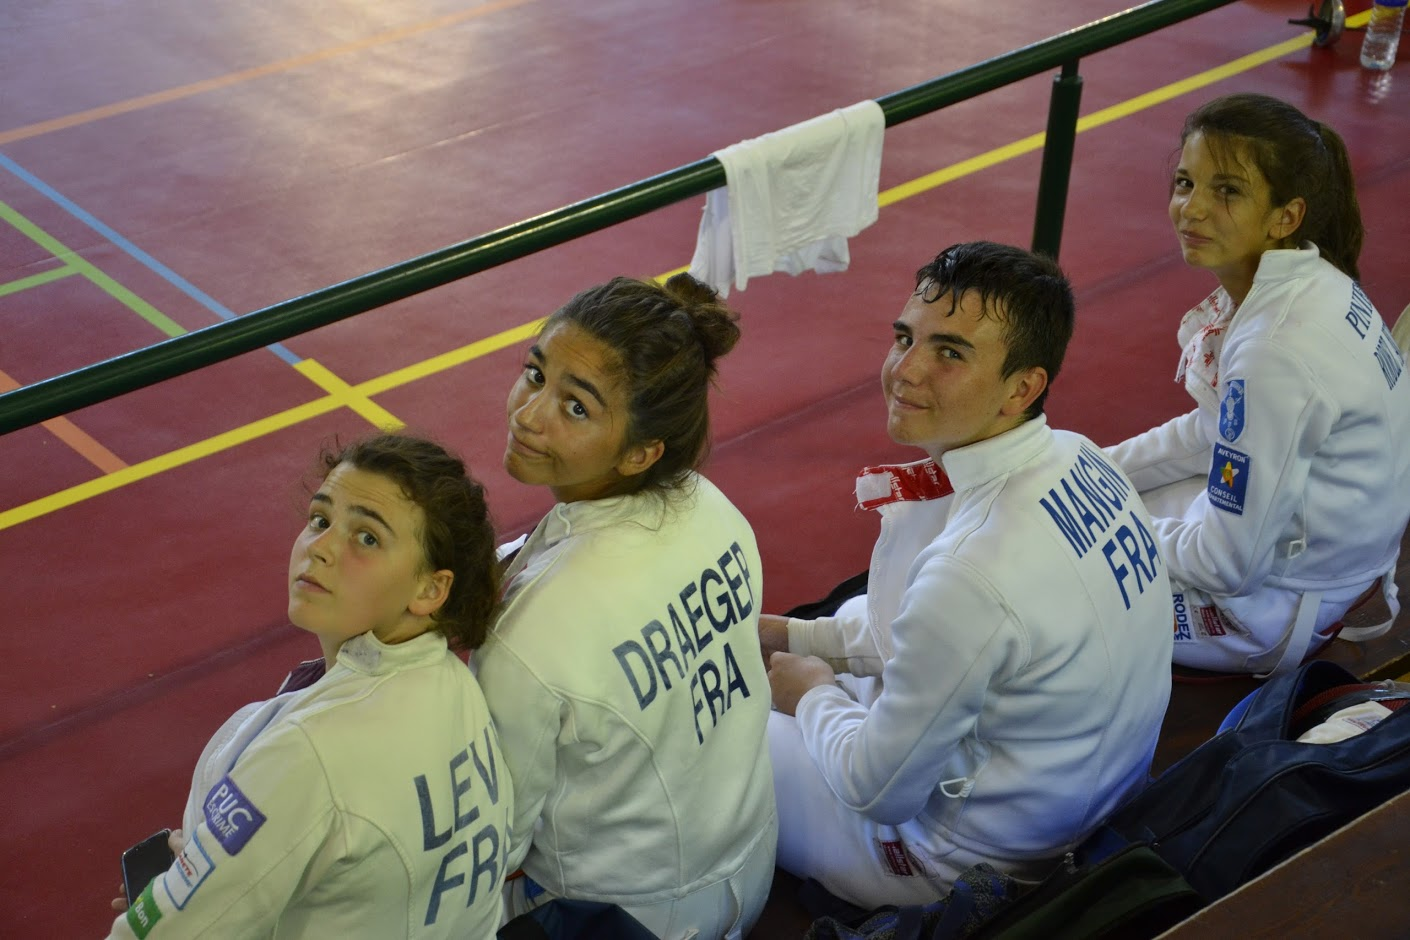 Fencing training camp in Naucelle - 2016